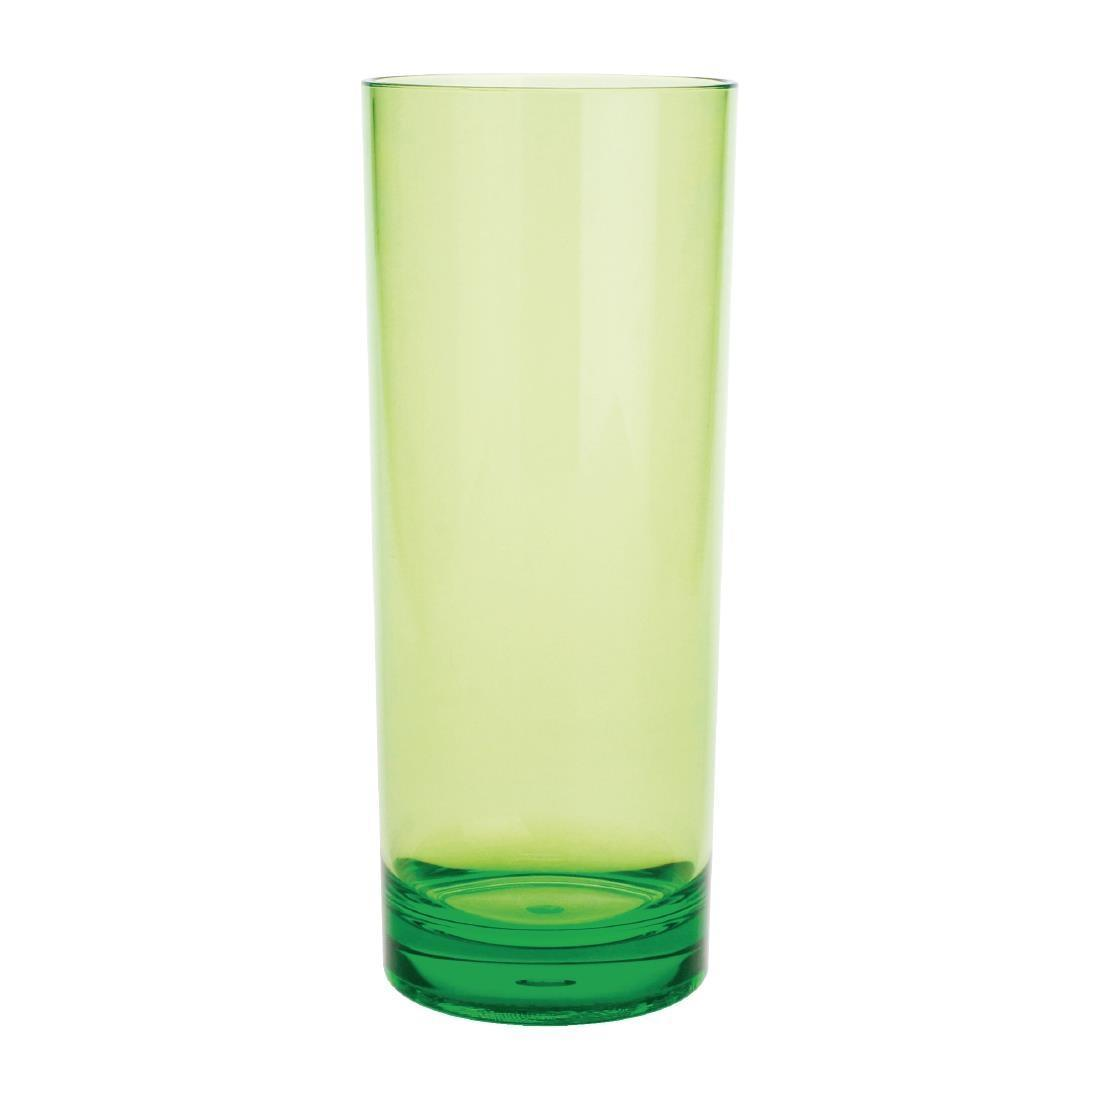 Kristallon Polycarbonate Hi Ball Glasses Green 360ml - Case 6 - DC926